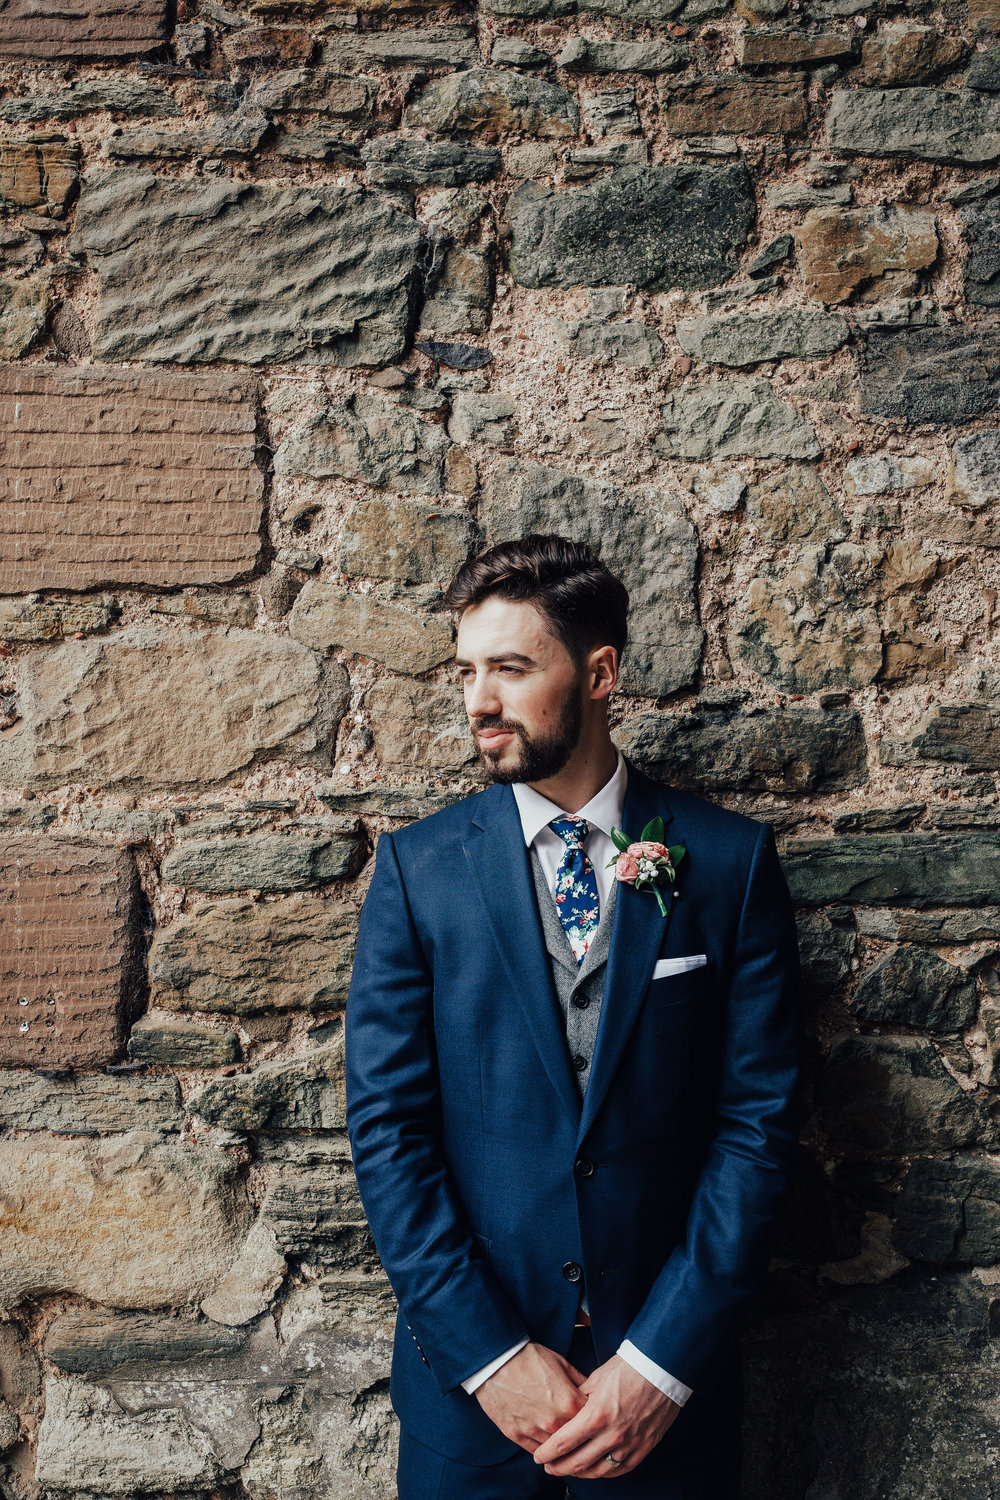 PJ_PHILLIPS_PHOTOGRAPHY_EDINBURGH_WEDDERBURN_BARNS_WEDDING_EDINBURGH_WEDDING_PHOTOGRAPHER_103.jpg